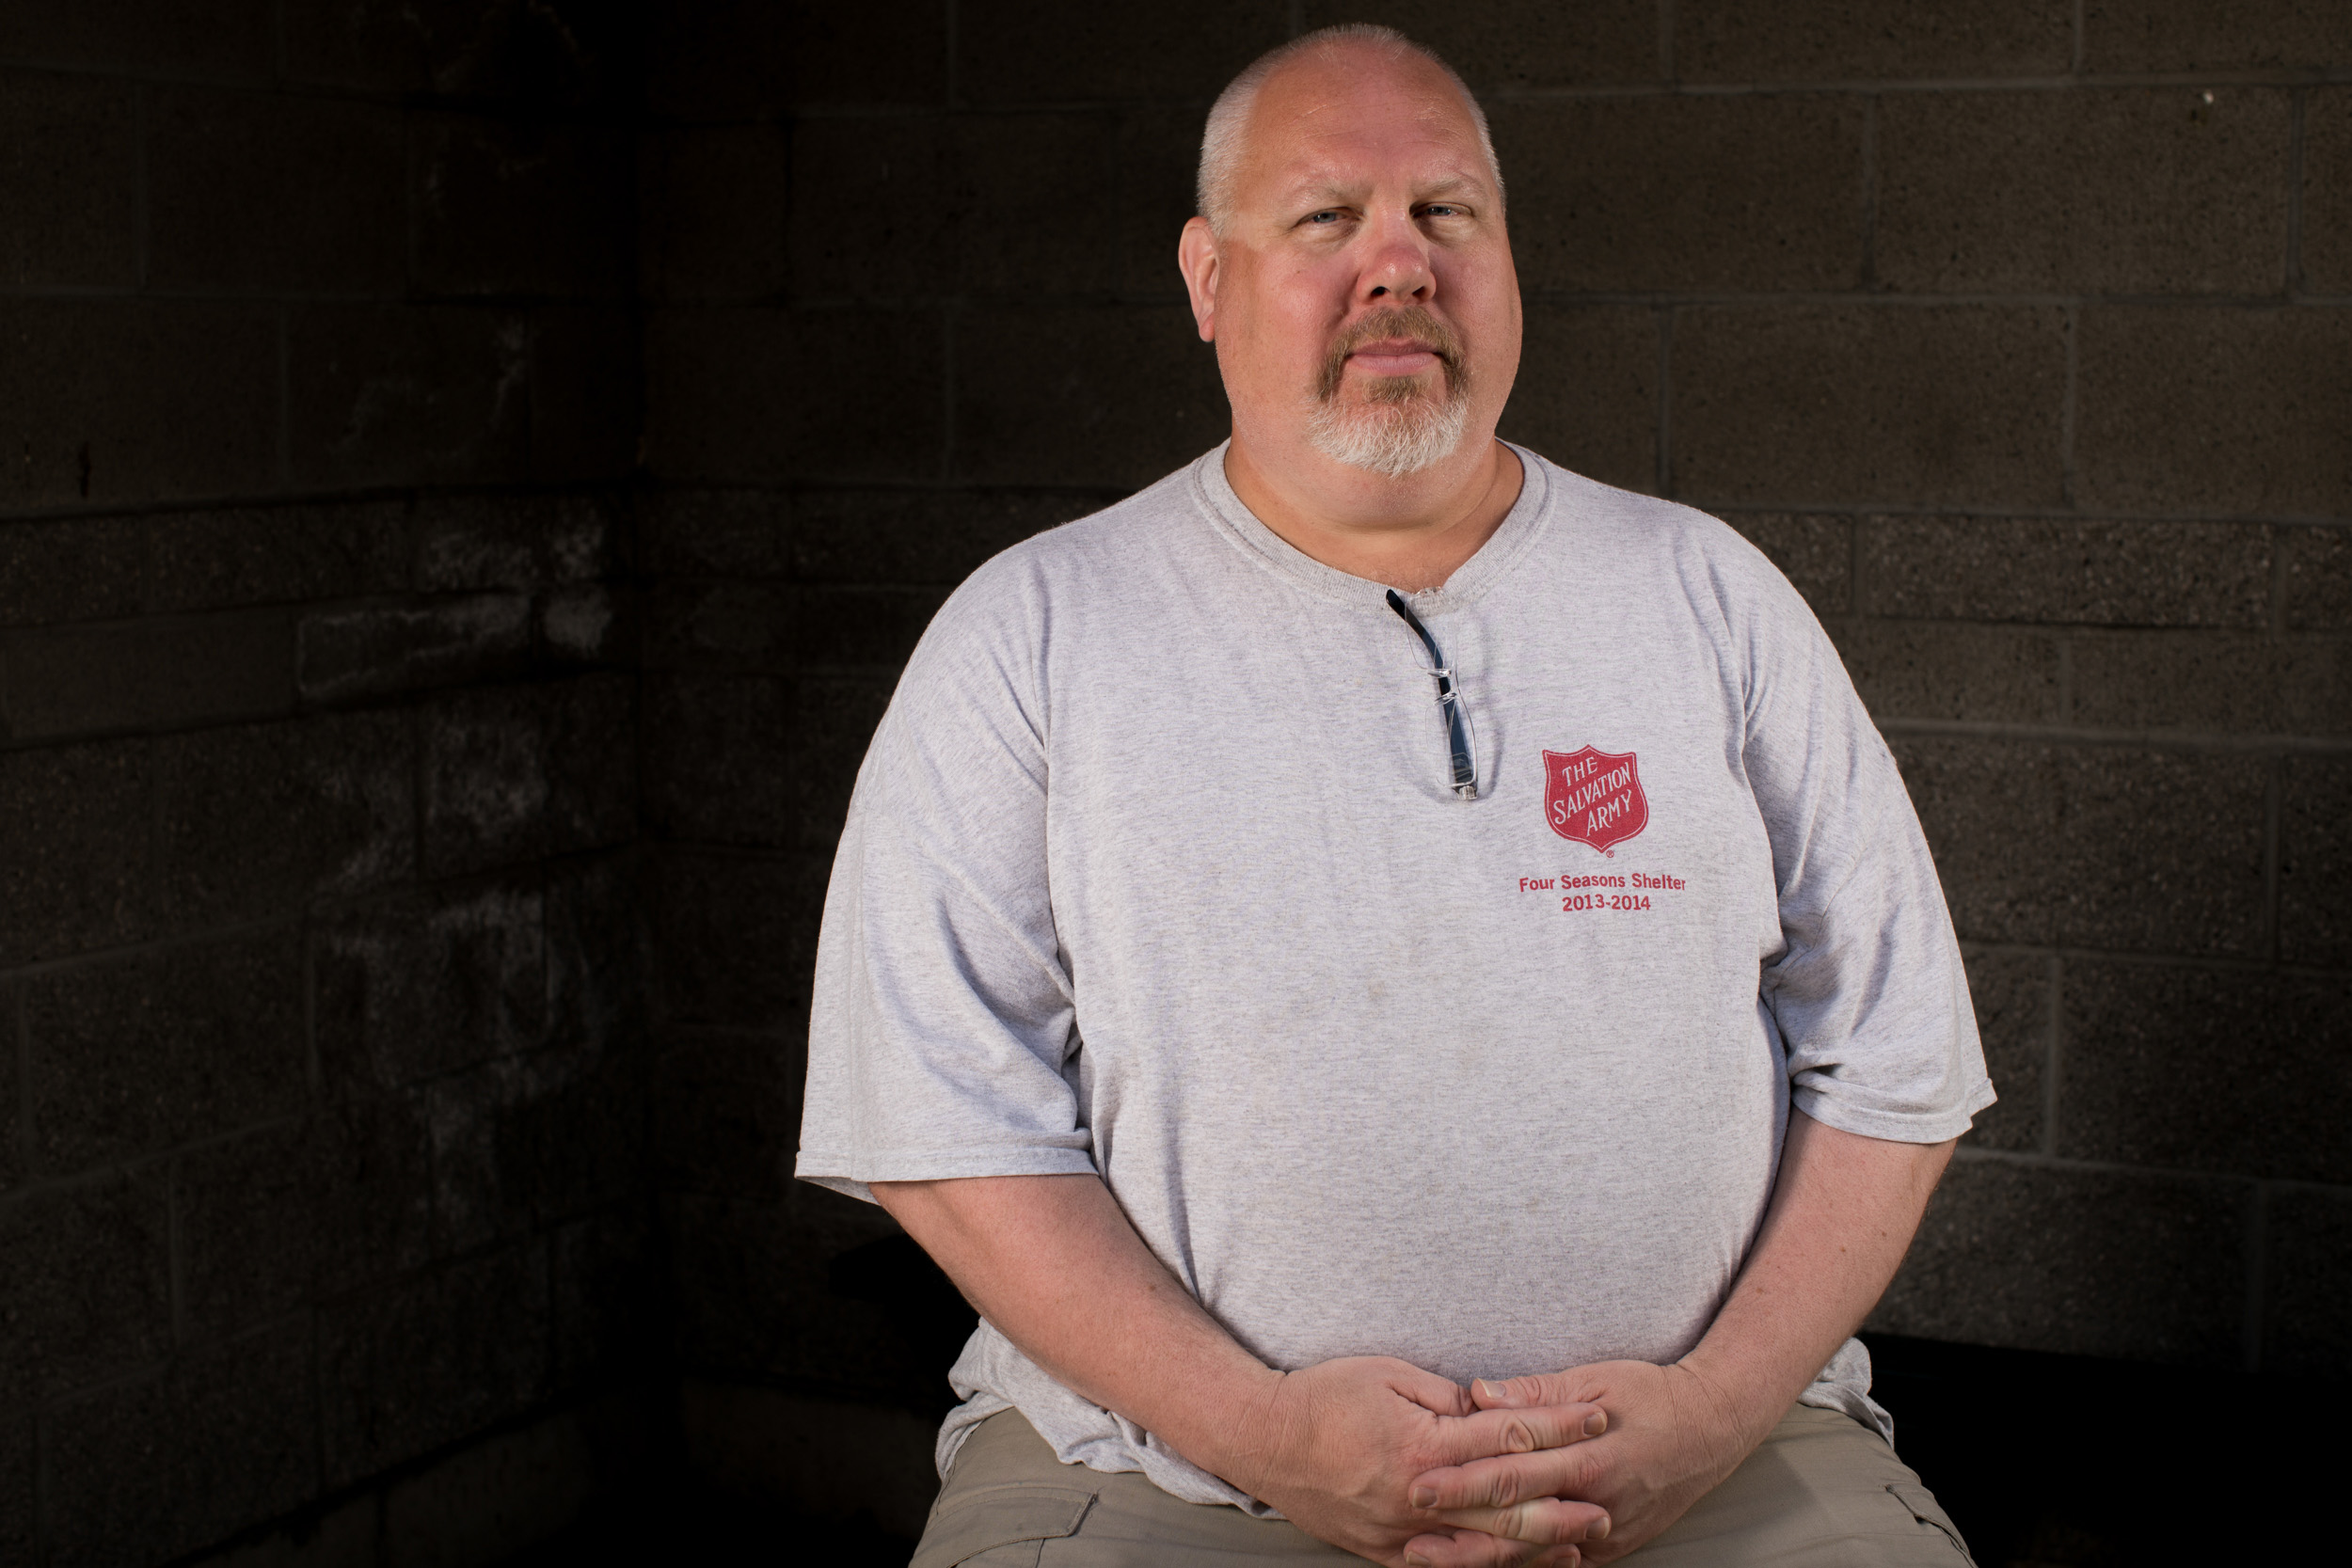 Phil Sorenson at Salvation Army William Booth Center in Seattle, May 24, 2018.